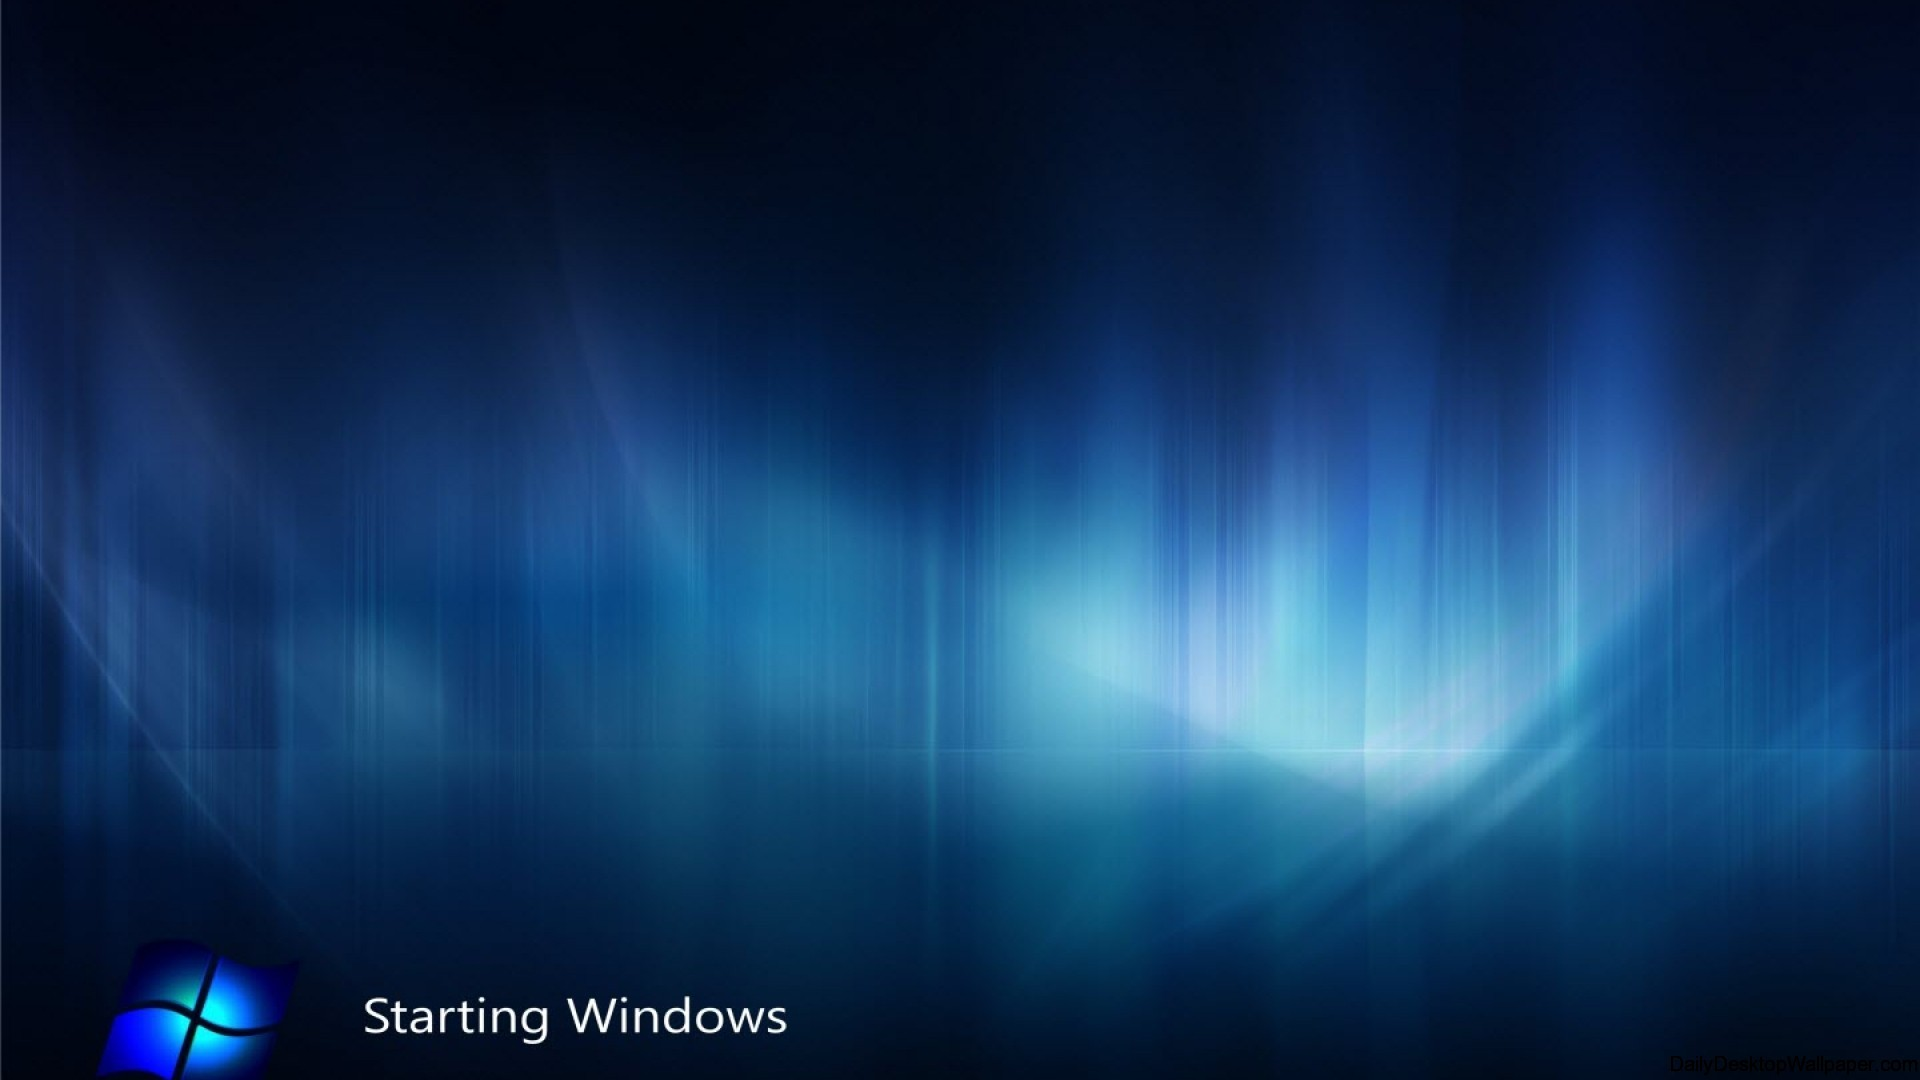 Dark Stripey Windows 8 Wallpaper